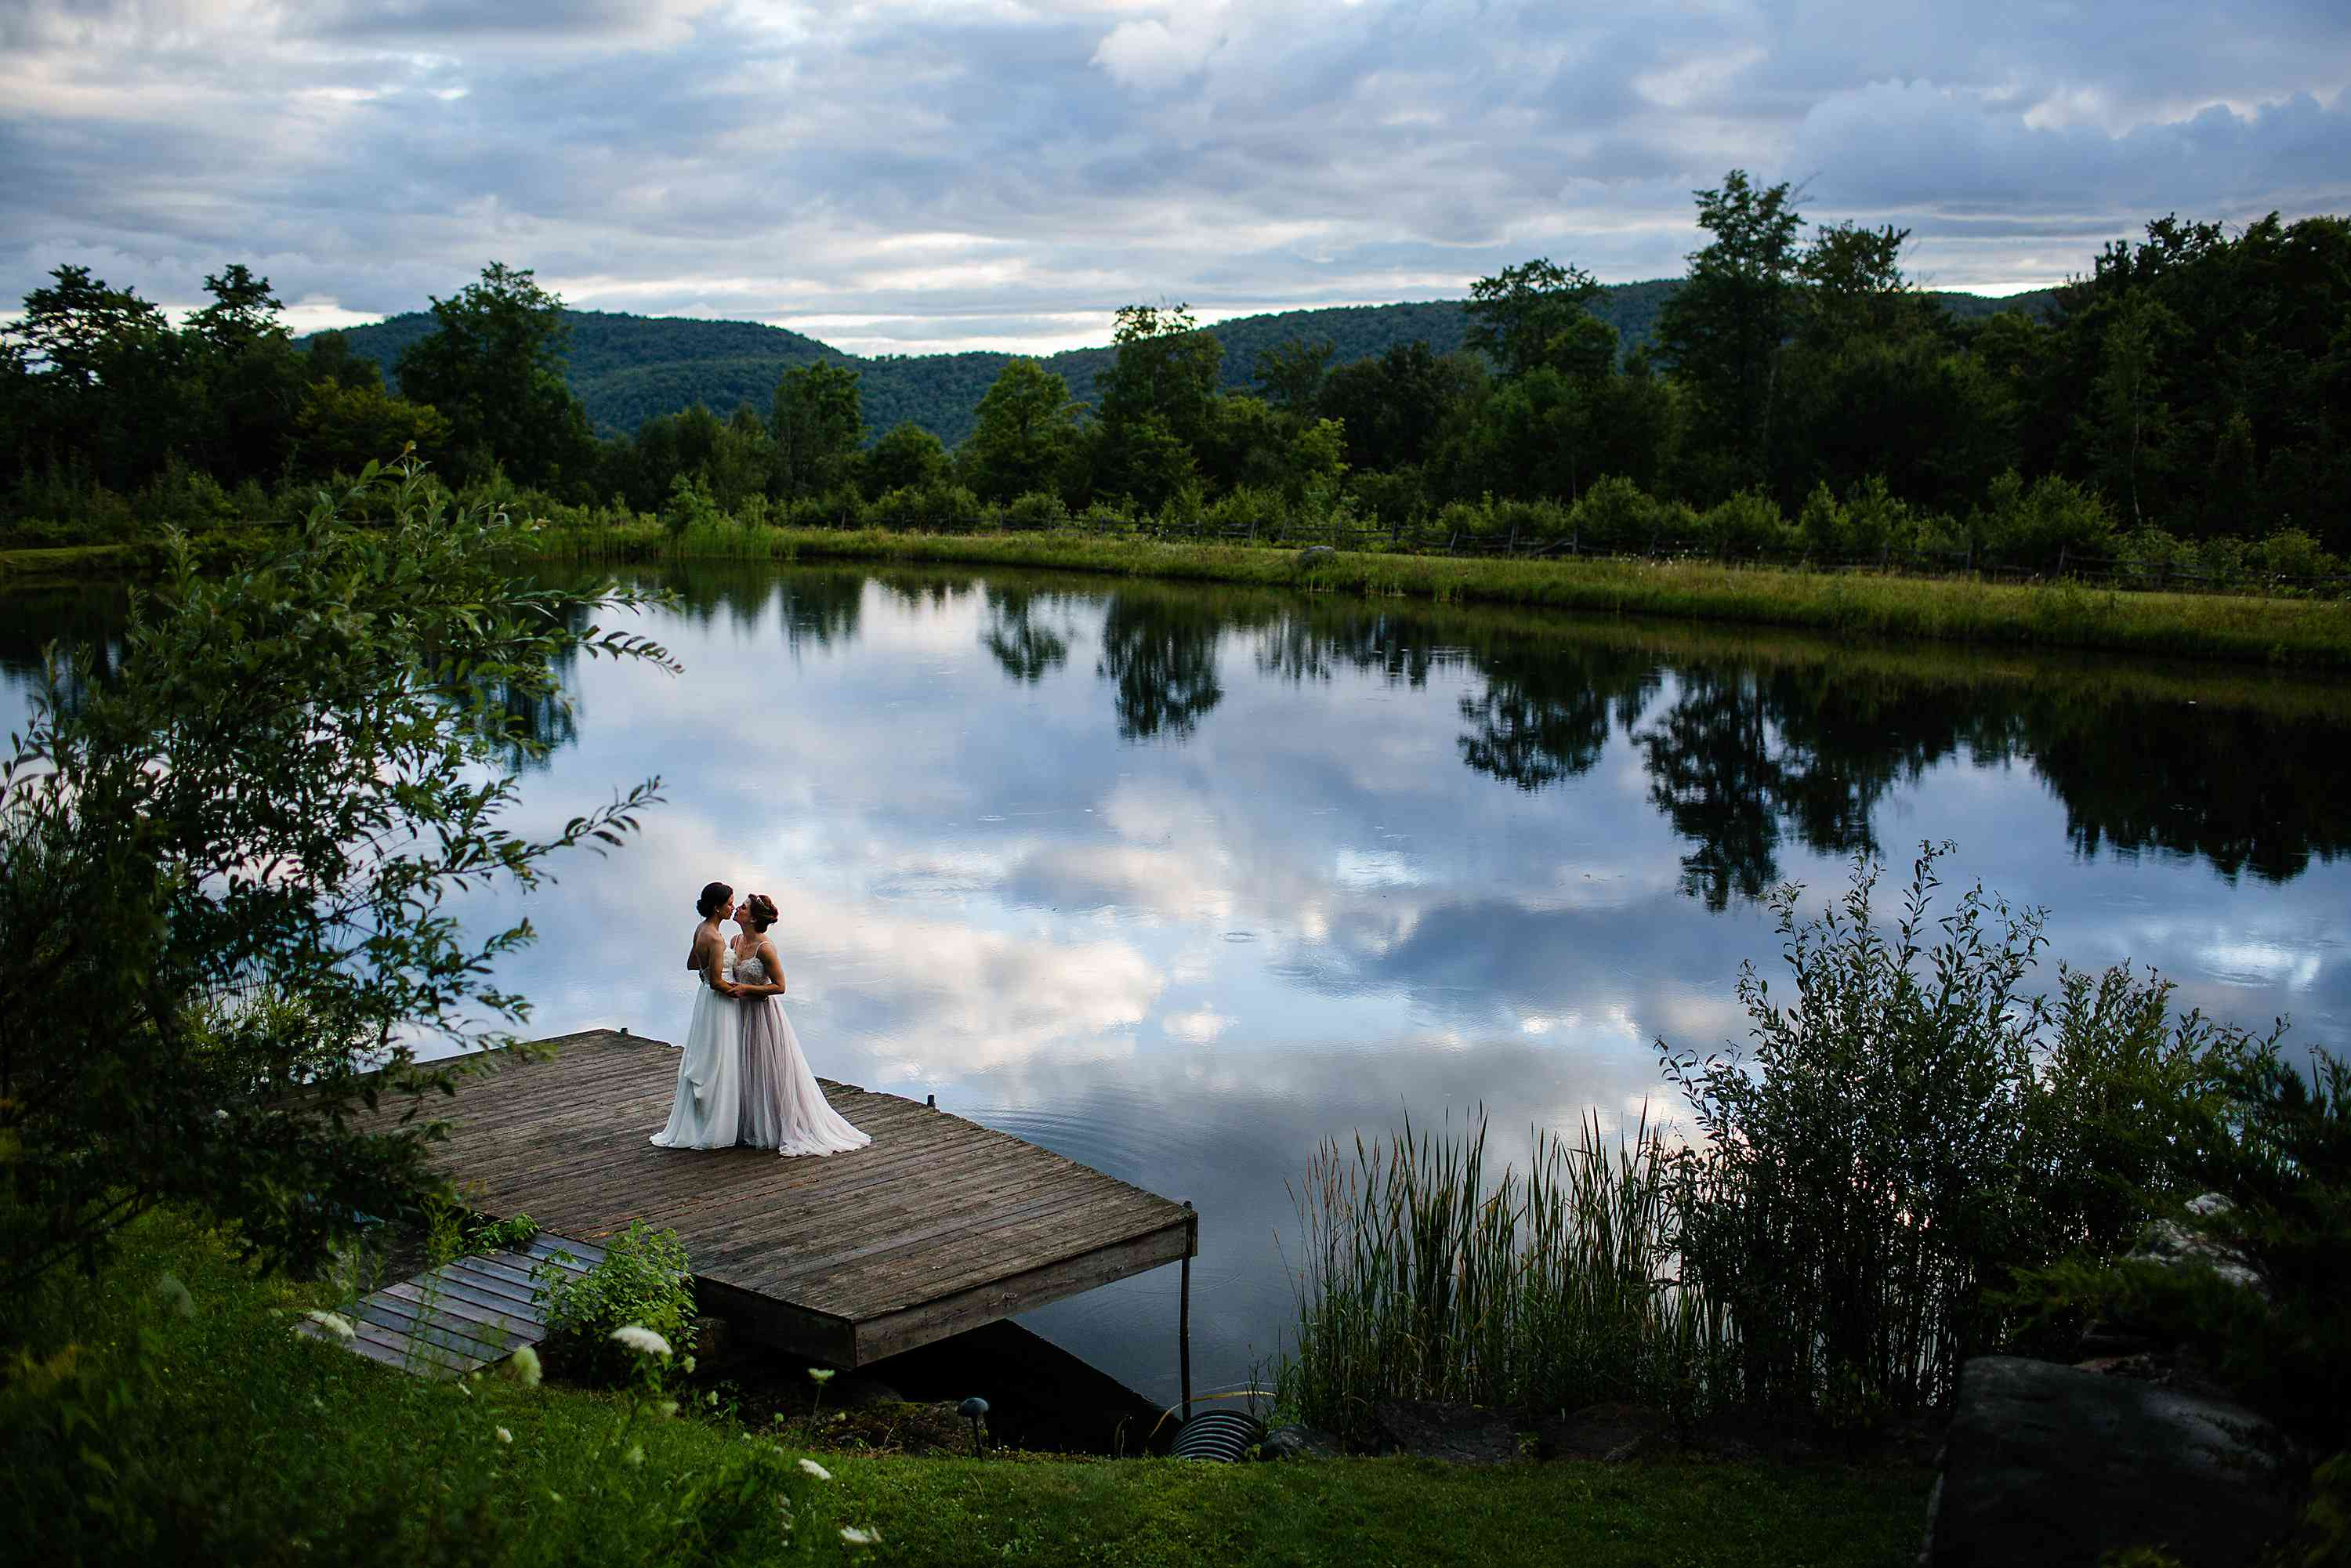 Two brides embracing by scenic lakeside.